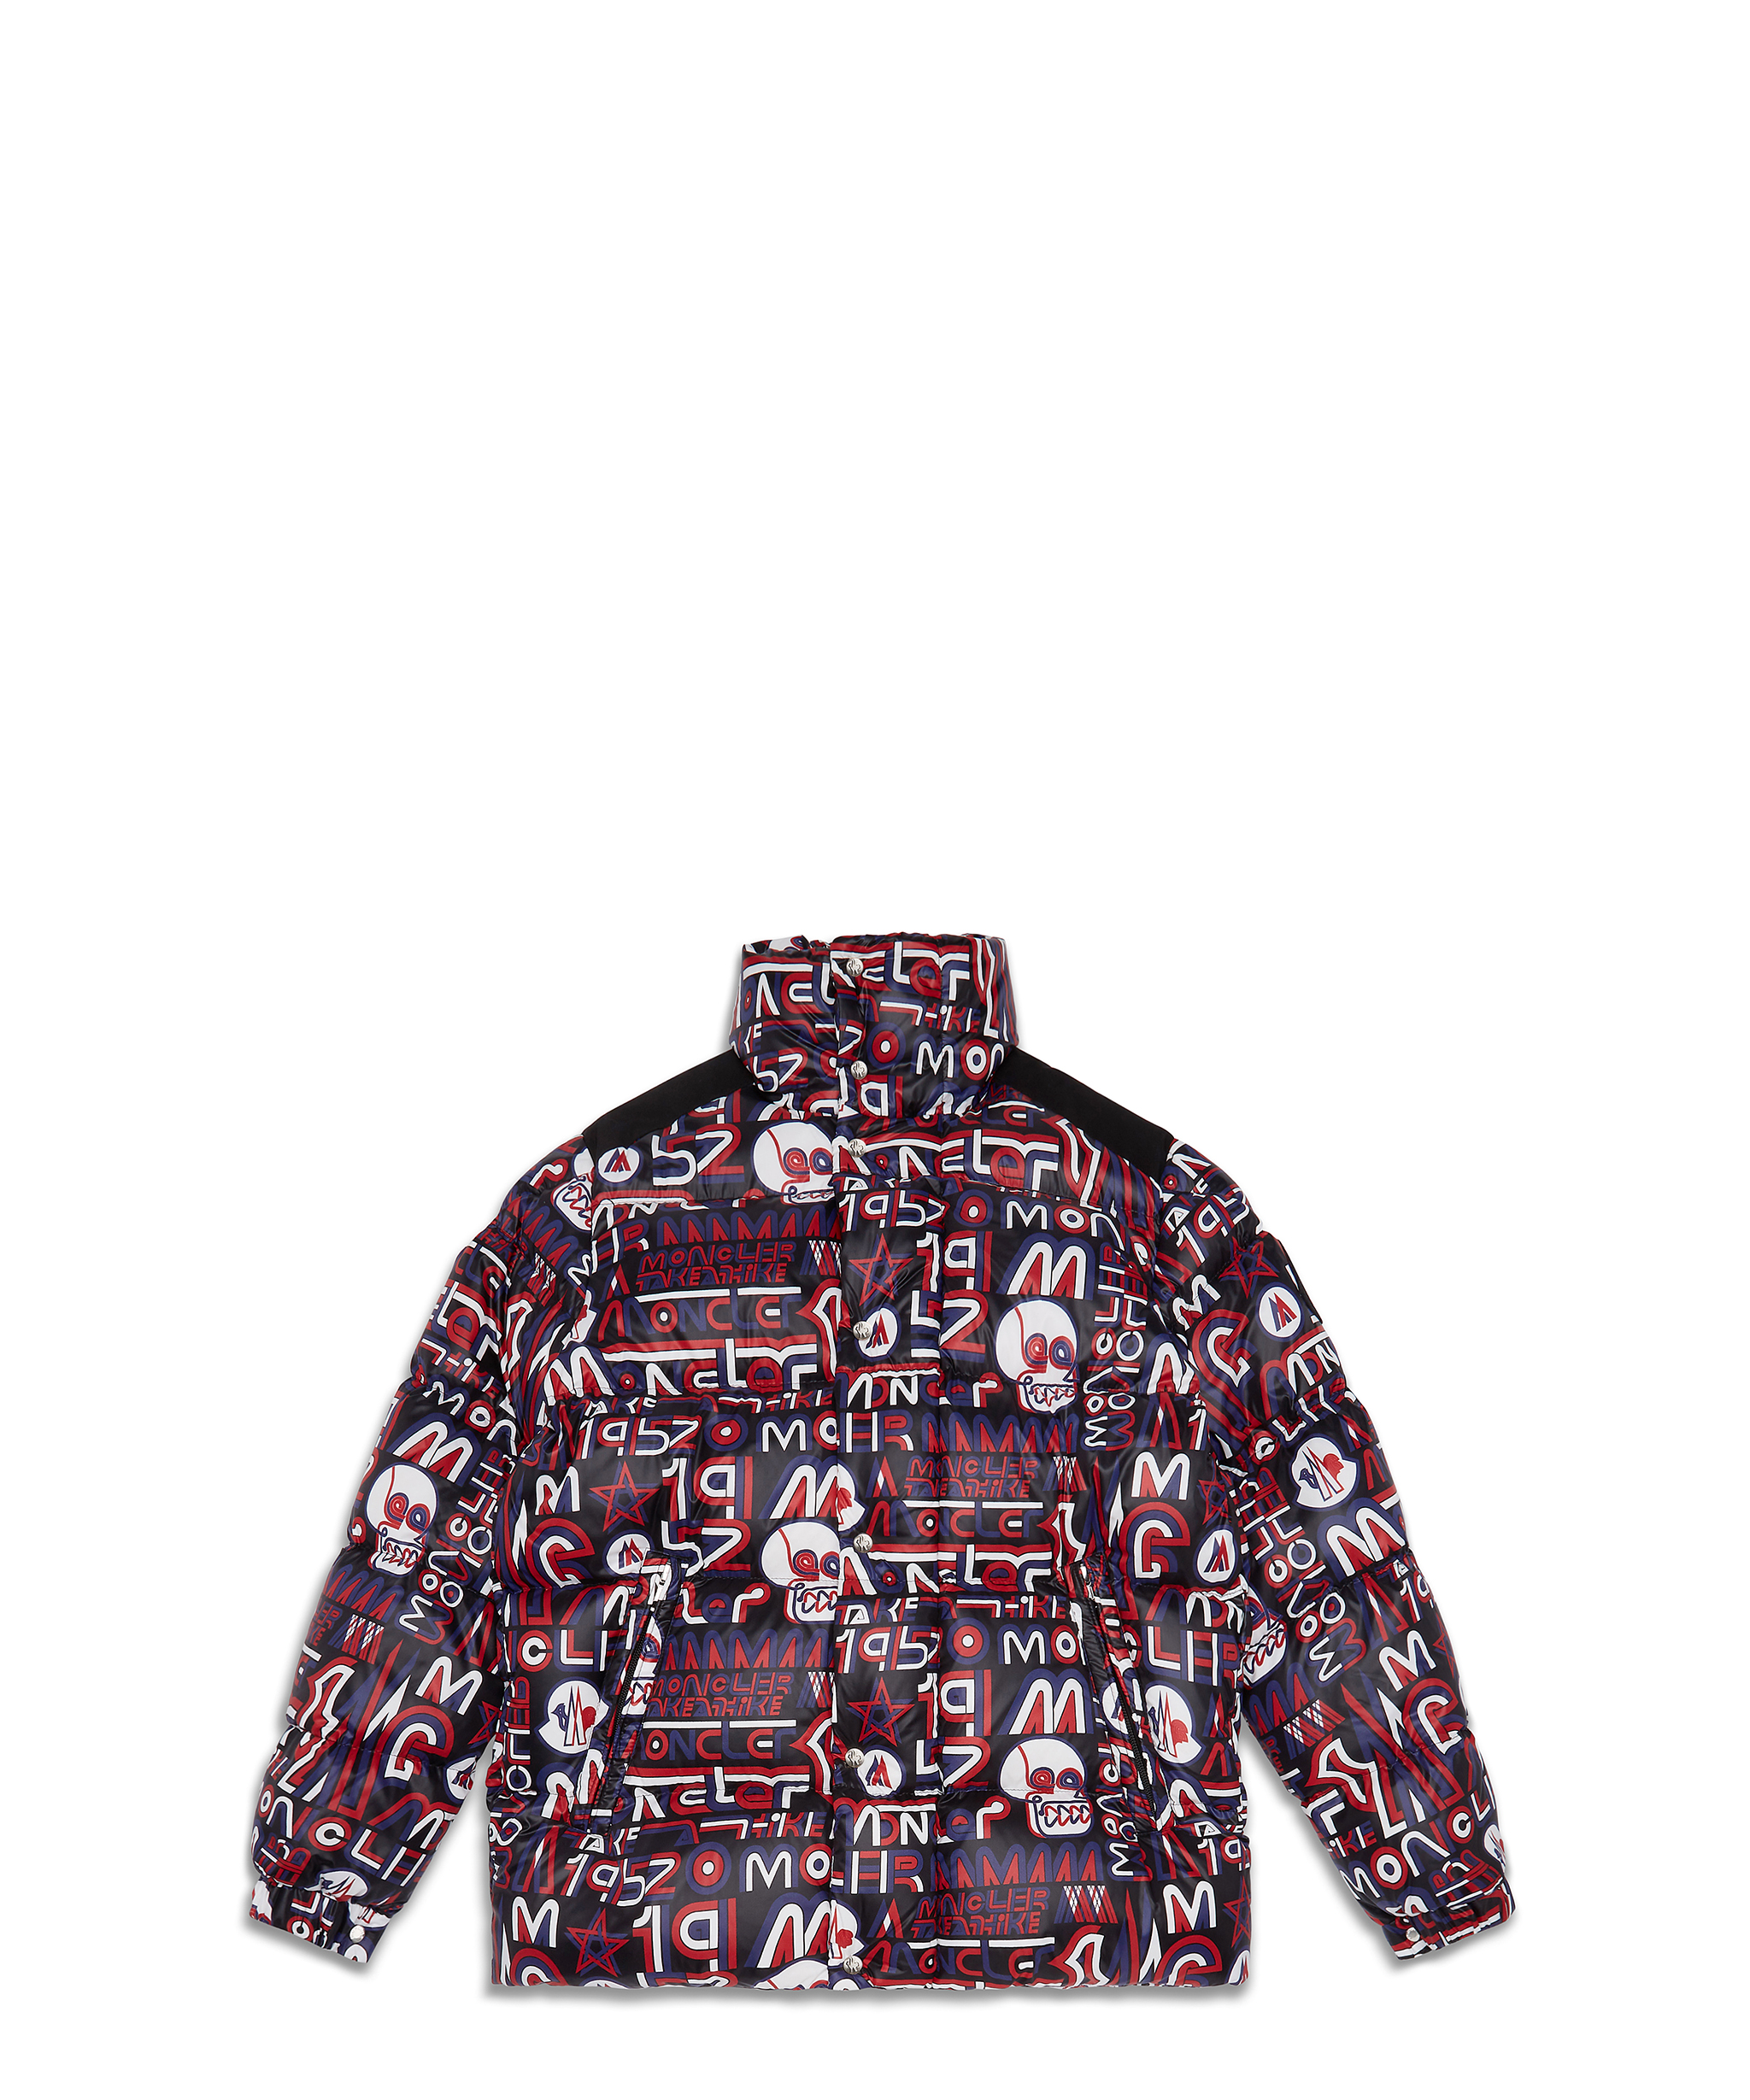 Moncler Genius 1952 Marennes Graphic Puffer Jacket by Luxury Moncler